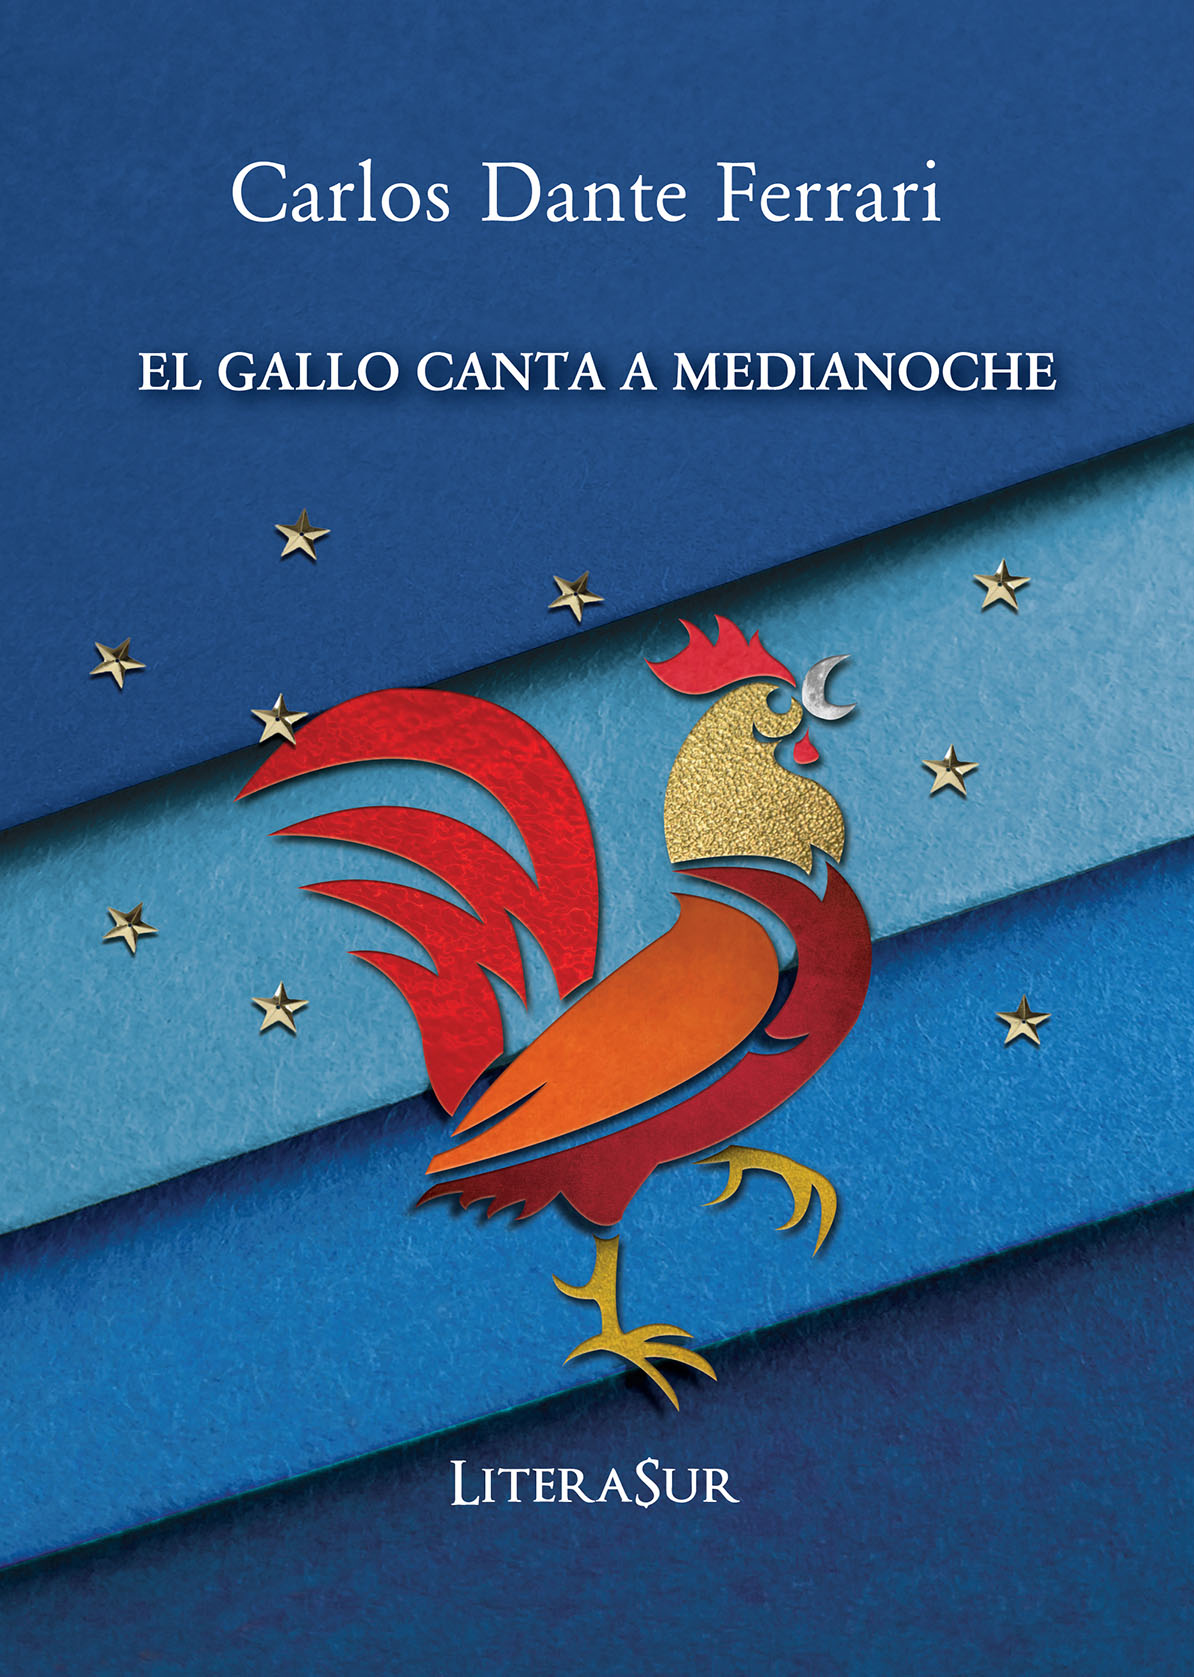 El gallo canta a medianoche